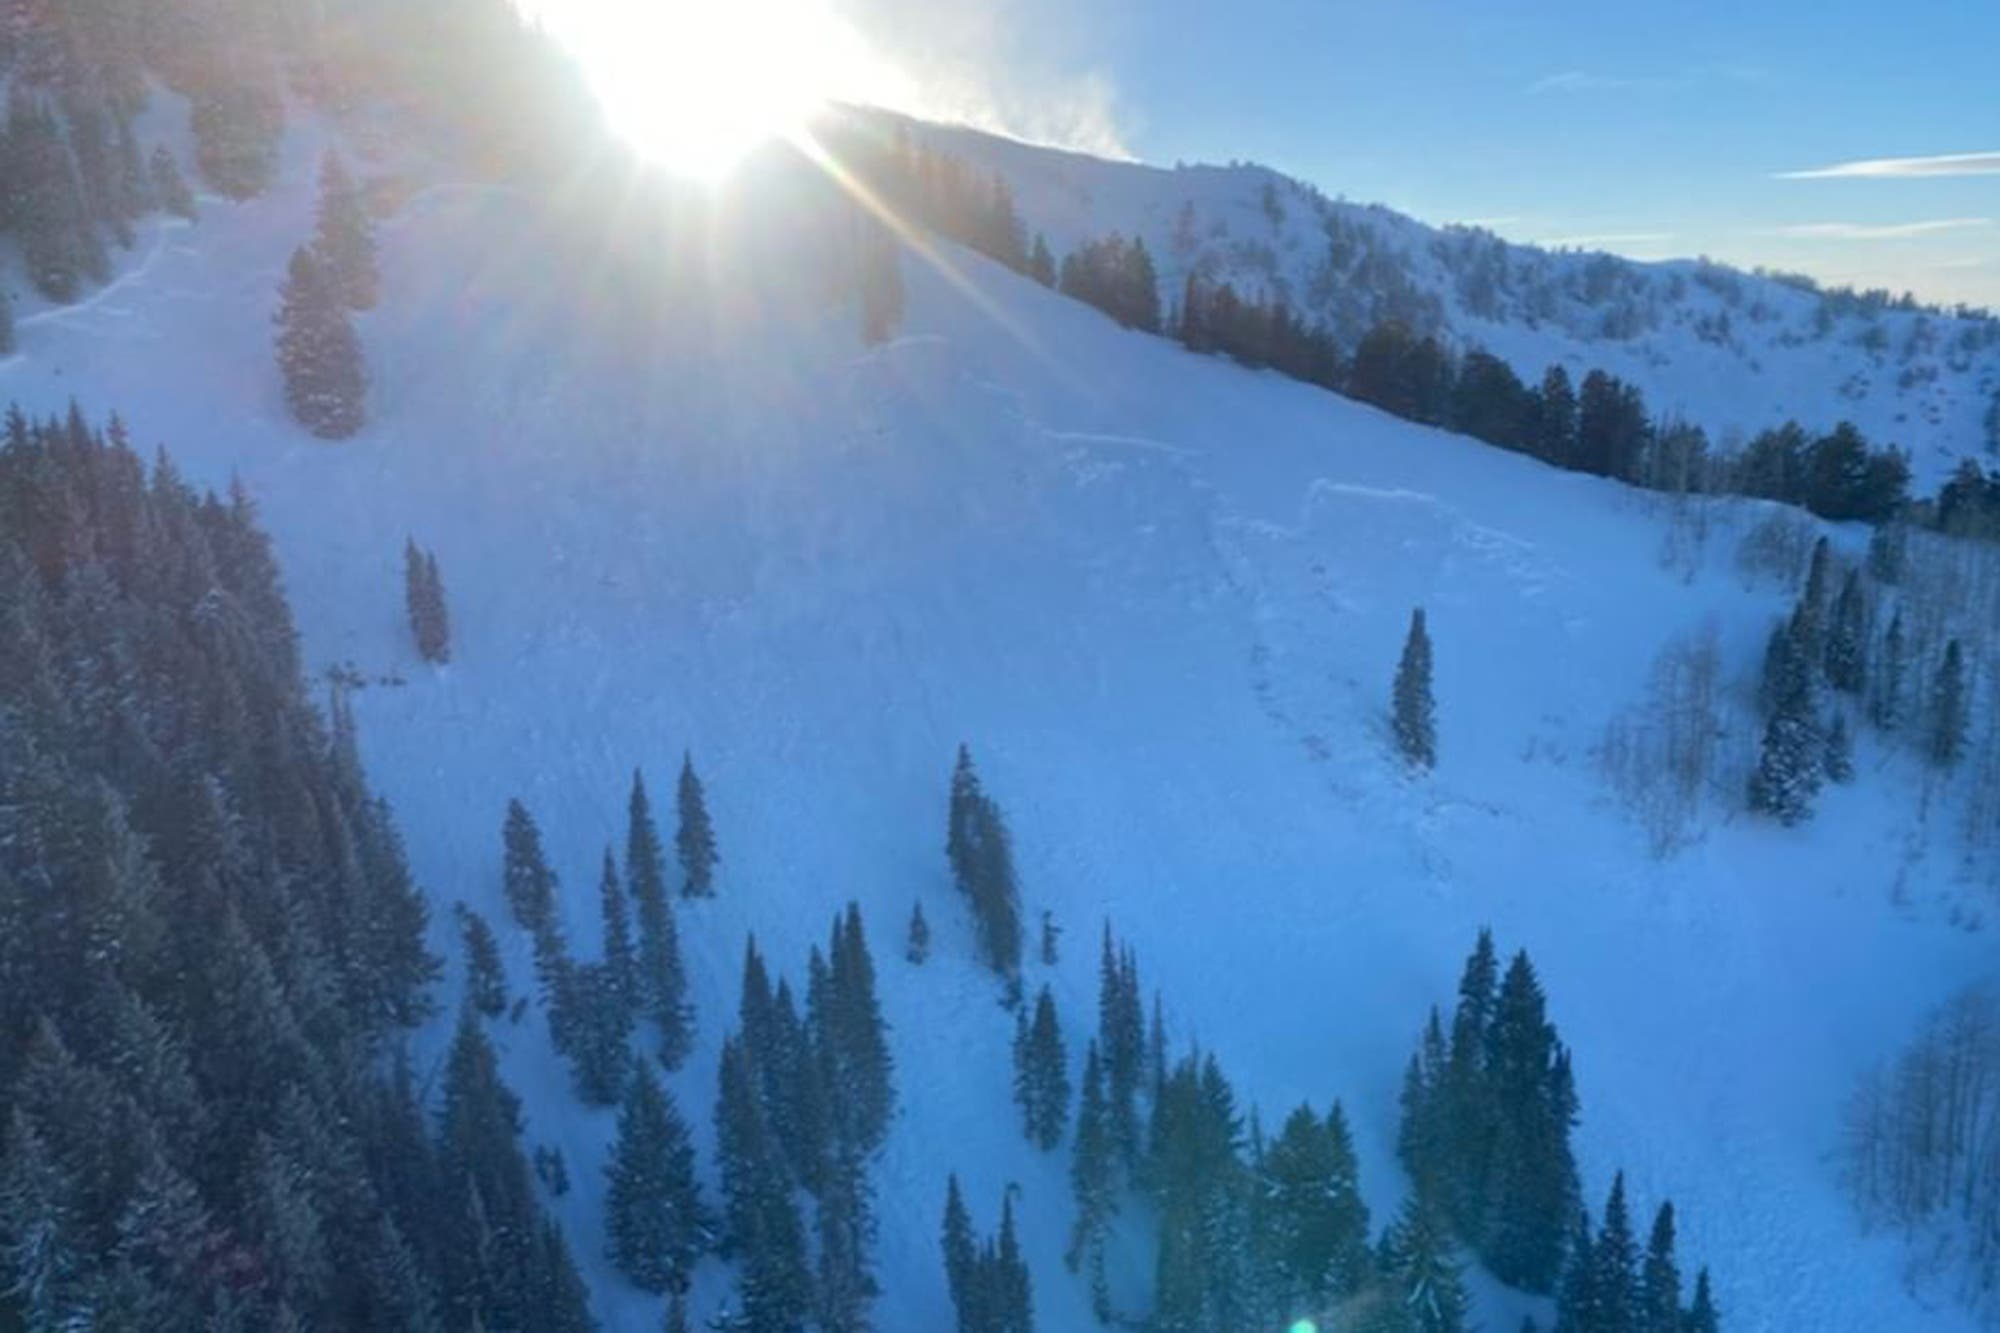 Four skiers died after an avalanche in the United States